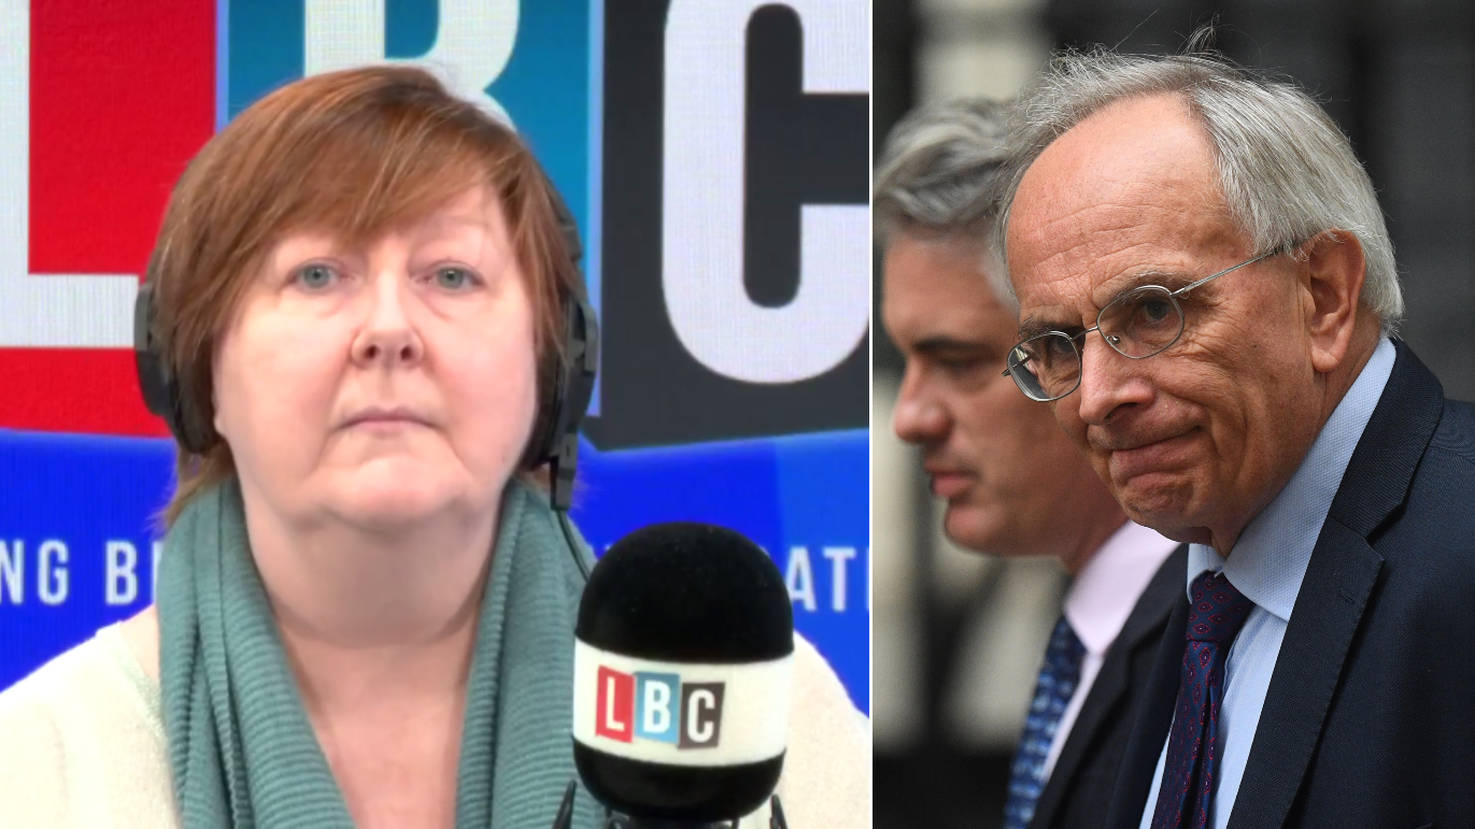 Staunch Brexiter Peter Bone Tells LBC He's Likely To Vote For Boris Johnson's Deal